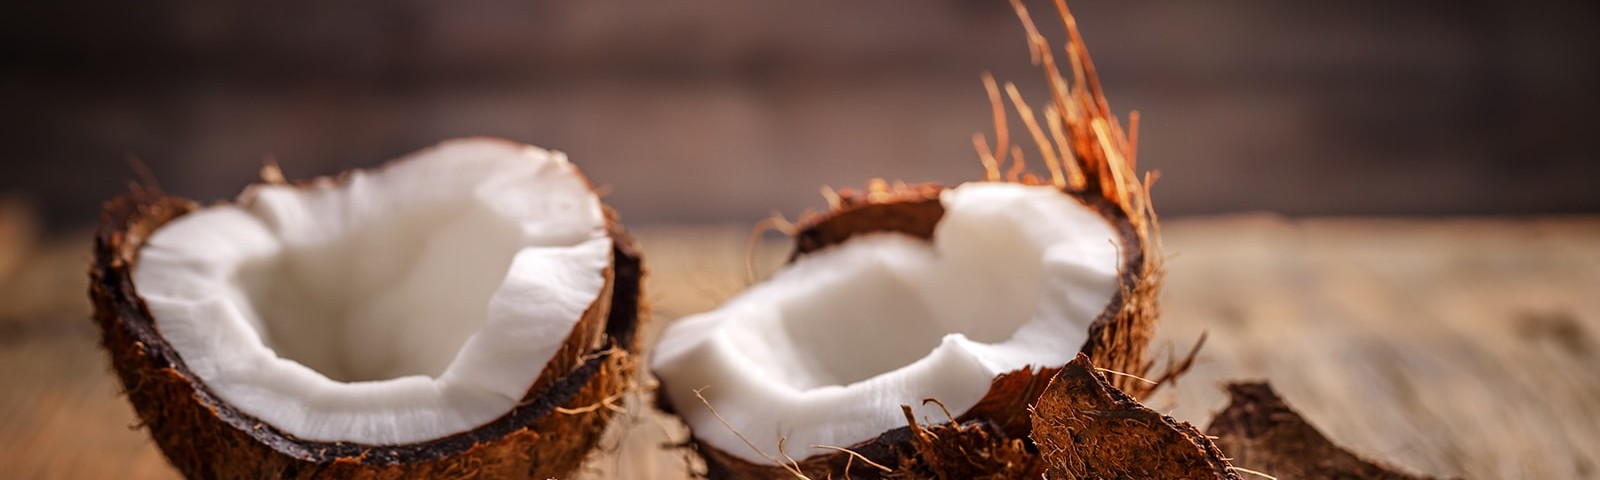 Coconuts might not be as good for your skin as you think